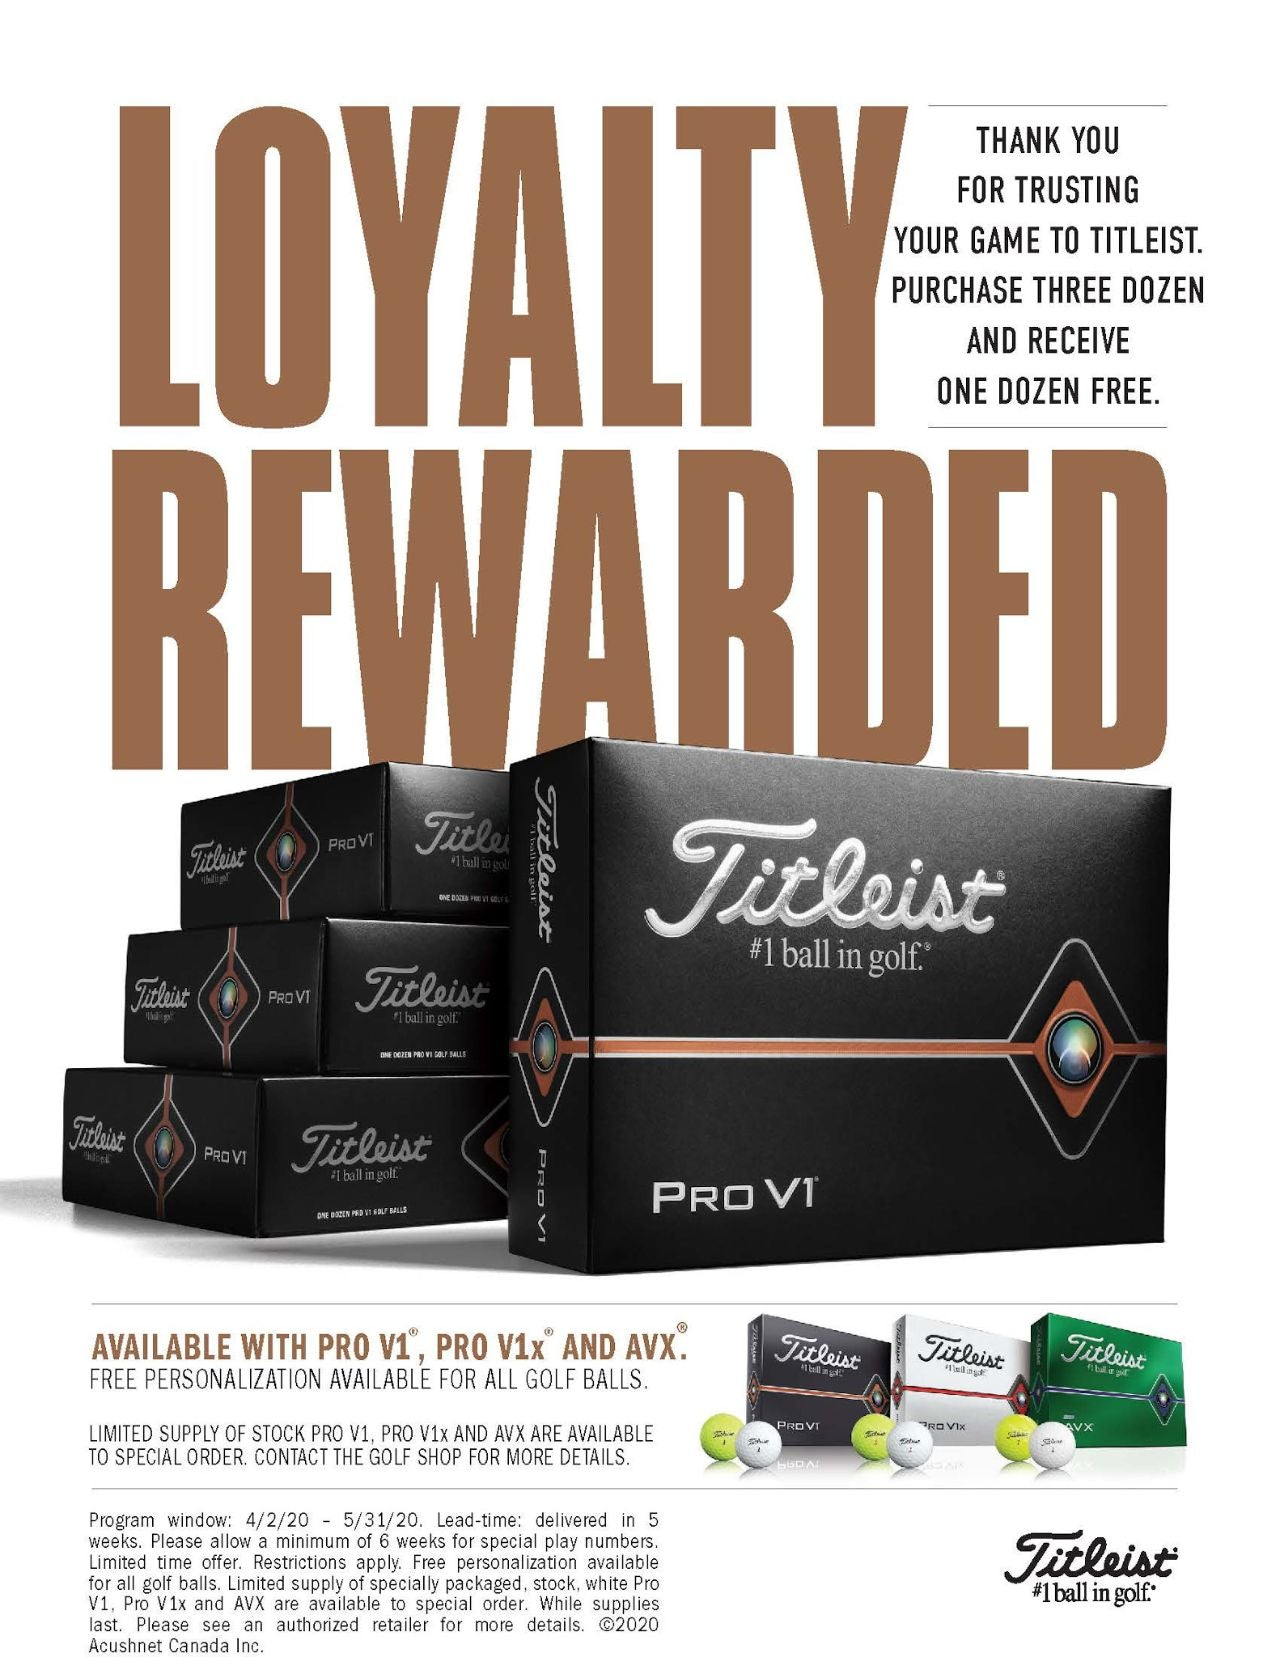 Pro Shop Deals | Titleist Loyalty Rewarded